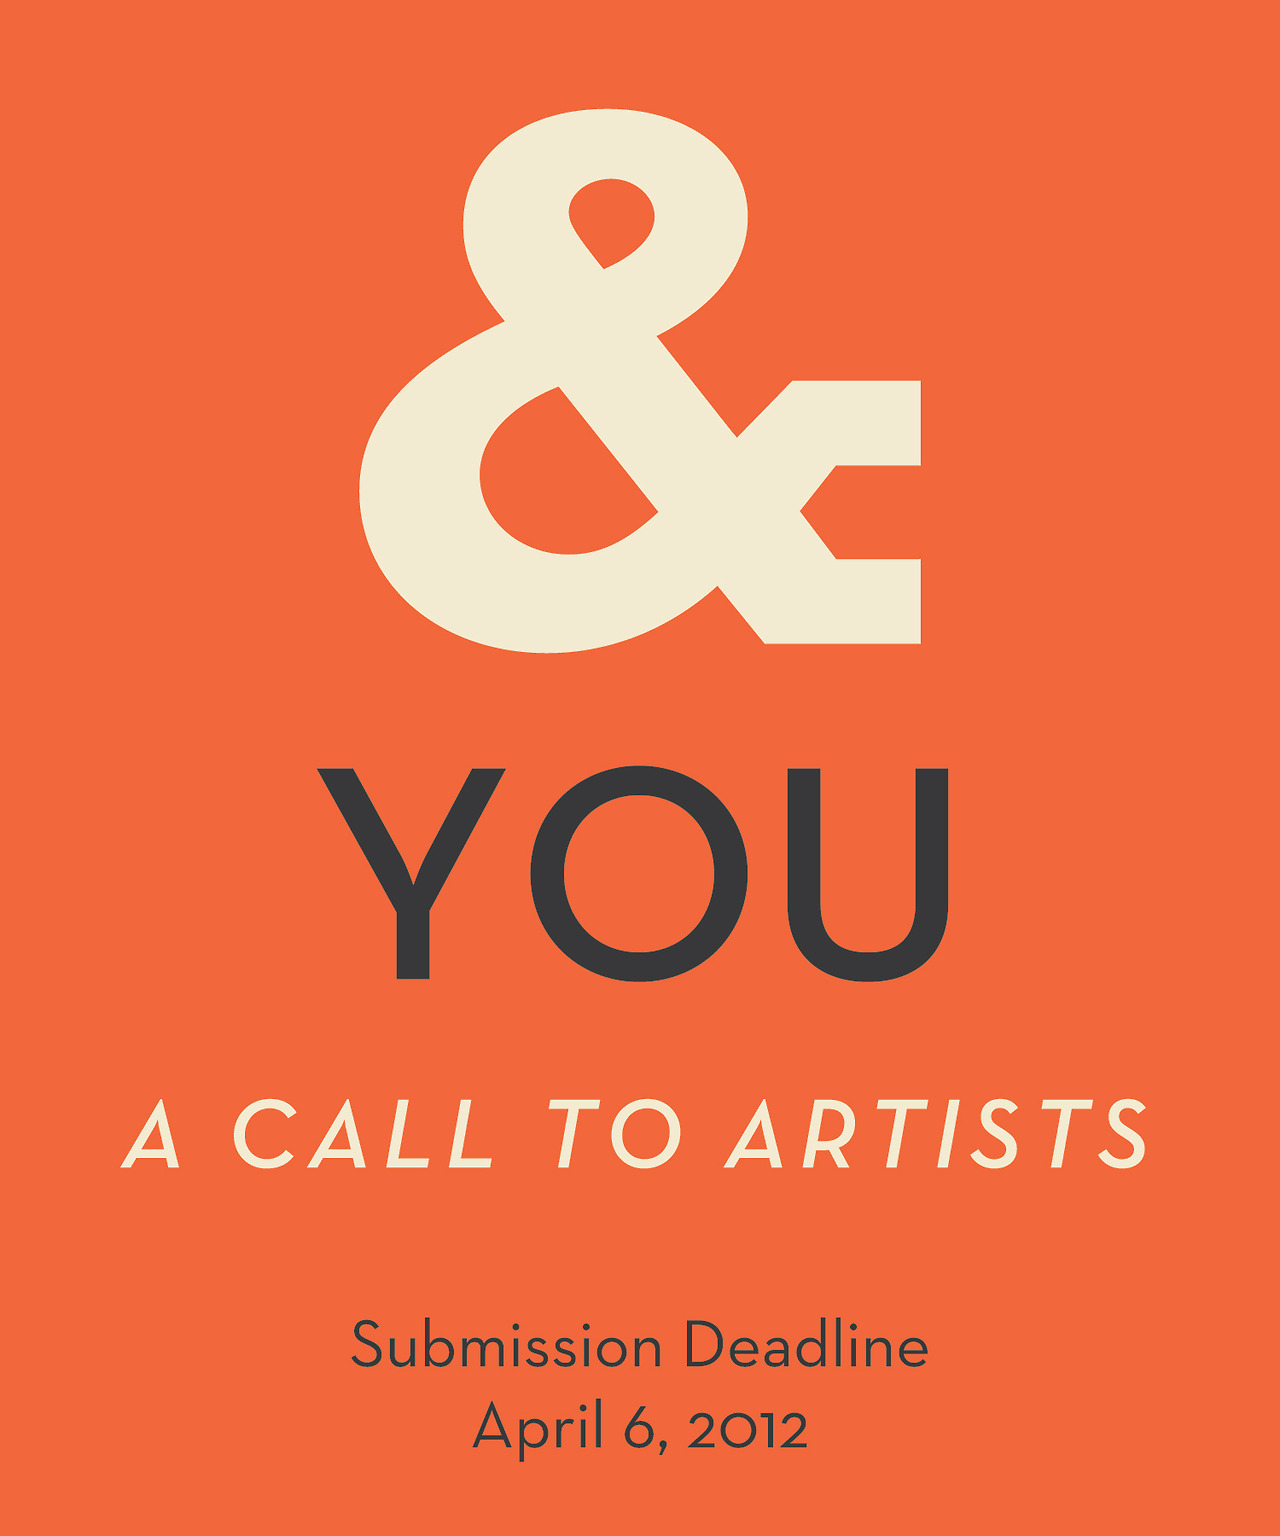 We've put out our call to artists for the Studio & annual group show - check it out! studioand: Call to artists for the 2013 Group show at Studio & Studio &, in Durango, Colorado is seeking artists for it's fourth annual six-person group show to be held July 13–20, 2013. Click here to download the prospectus and learn much more about the entry process. Entries much be received by April 15, 2013. We are encouraging artists to enter from around the country, so please help us spread the word about this by forwarding on to other artists that you may know and sharing on Facebook. As always, you can find more information about this call to artists and about Studio & in general on our website. We hope that you will throw your hat in the ring and look forward to seeing your work. Happy Creating, The artists of Studio & Durango, Colorado